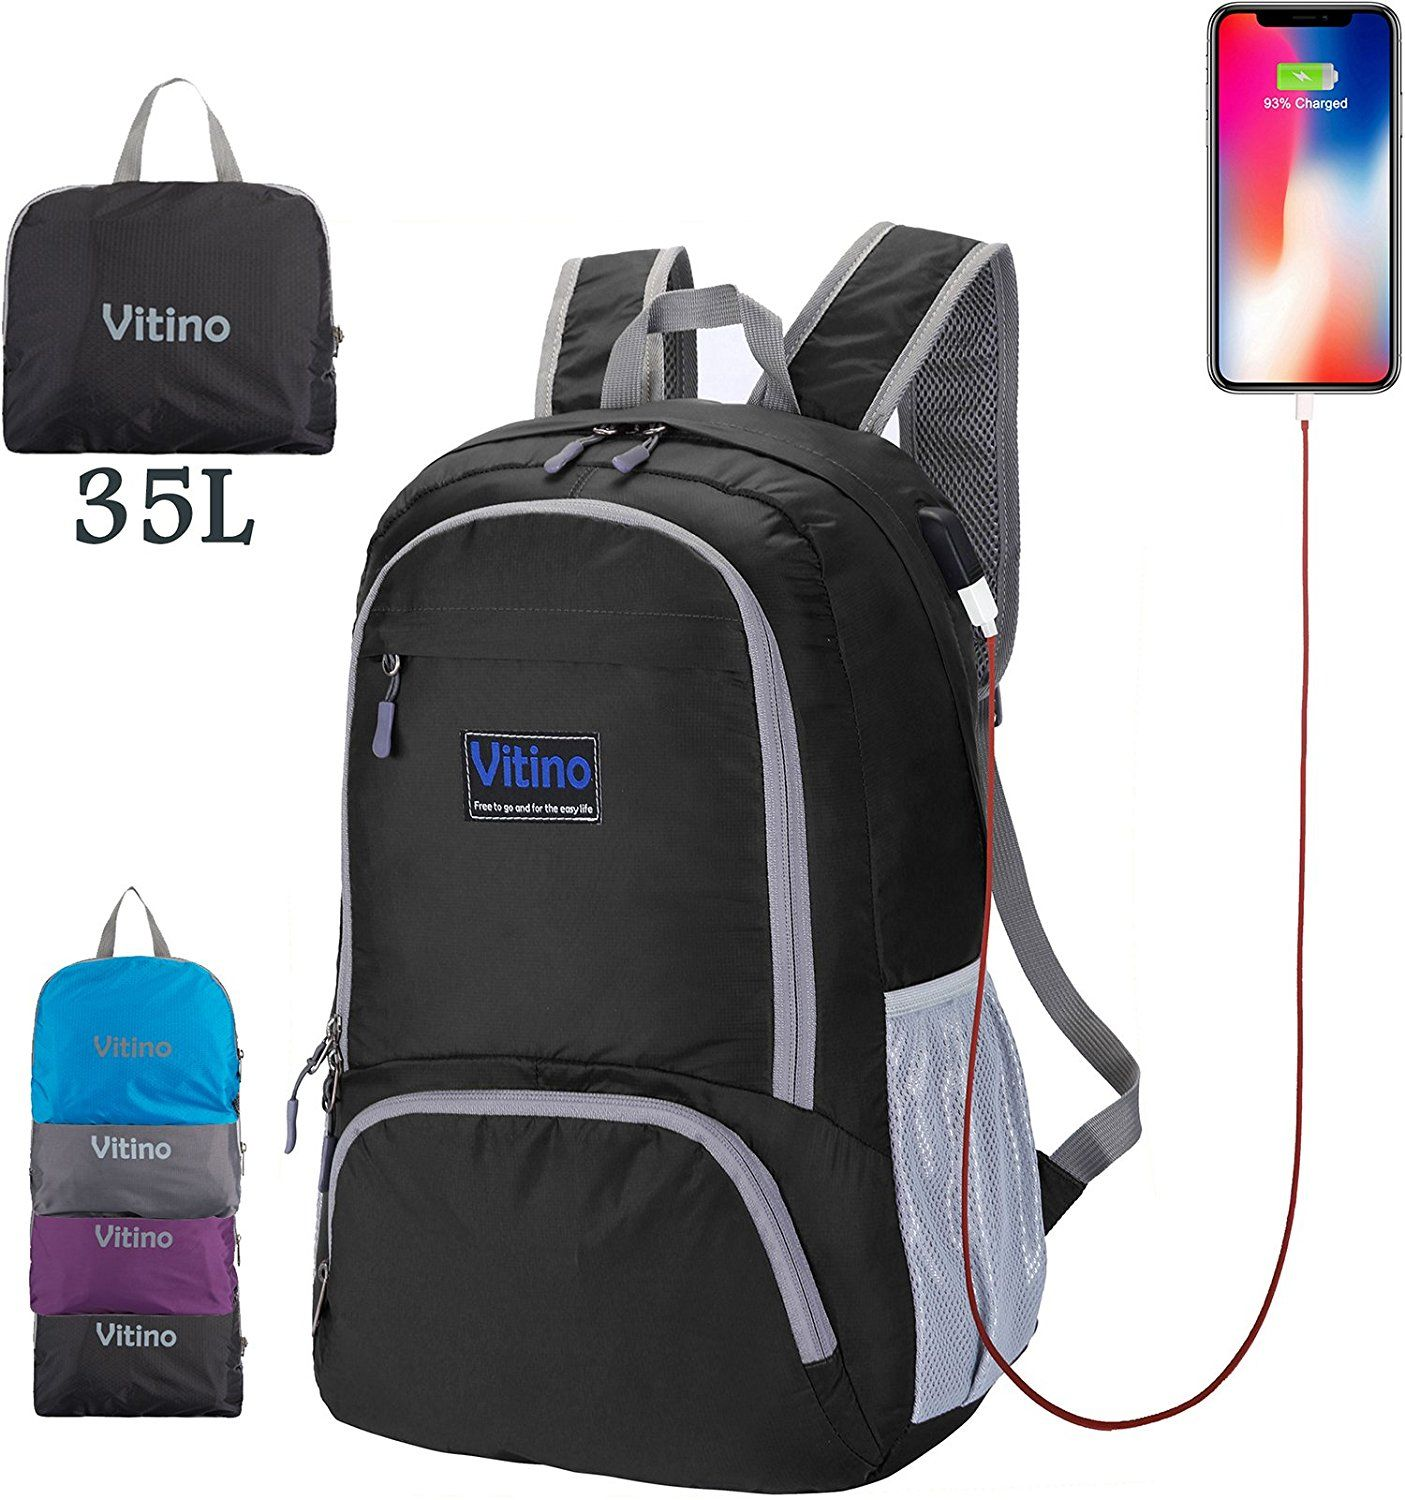 73aa2a972d67 Backpack With USB Charging Port - Vitino Water Resistant Lightweight ...